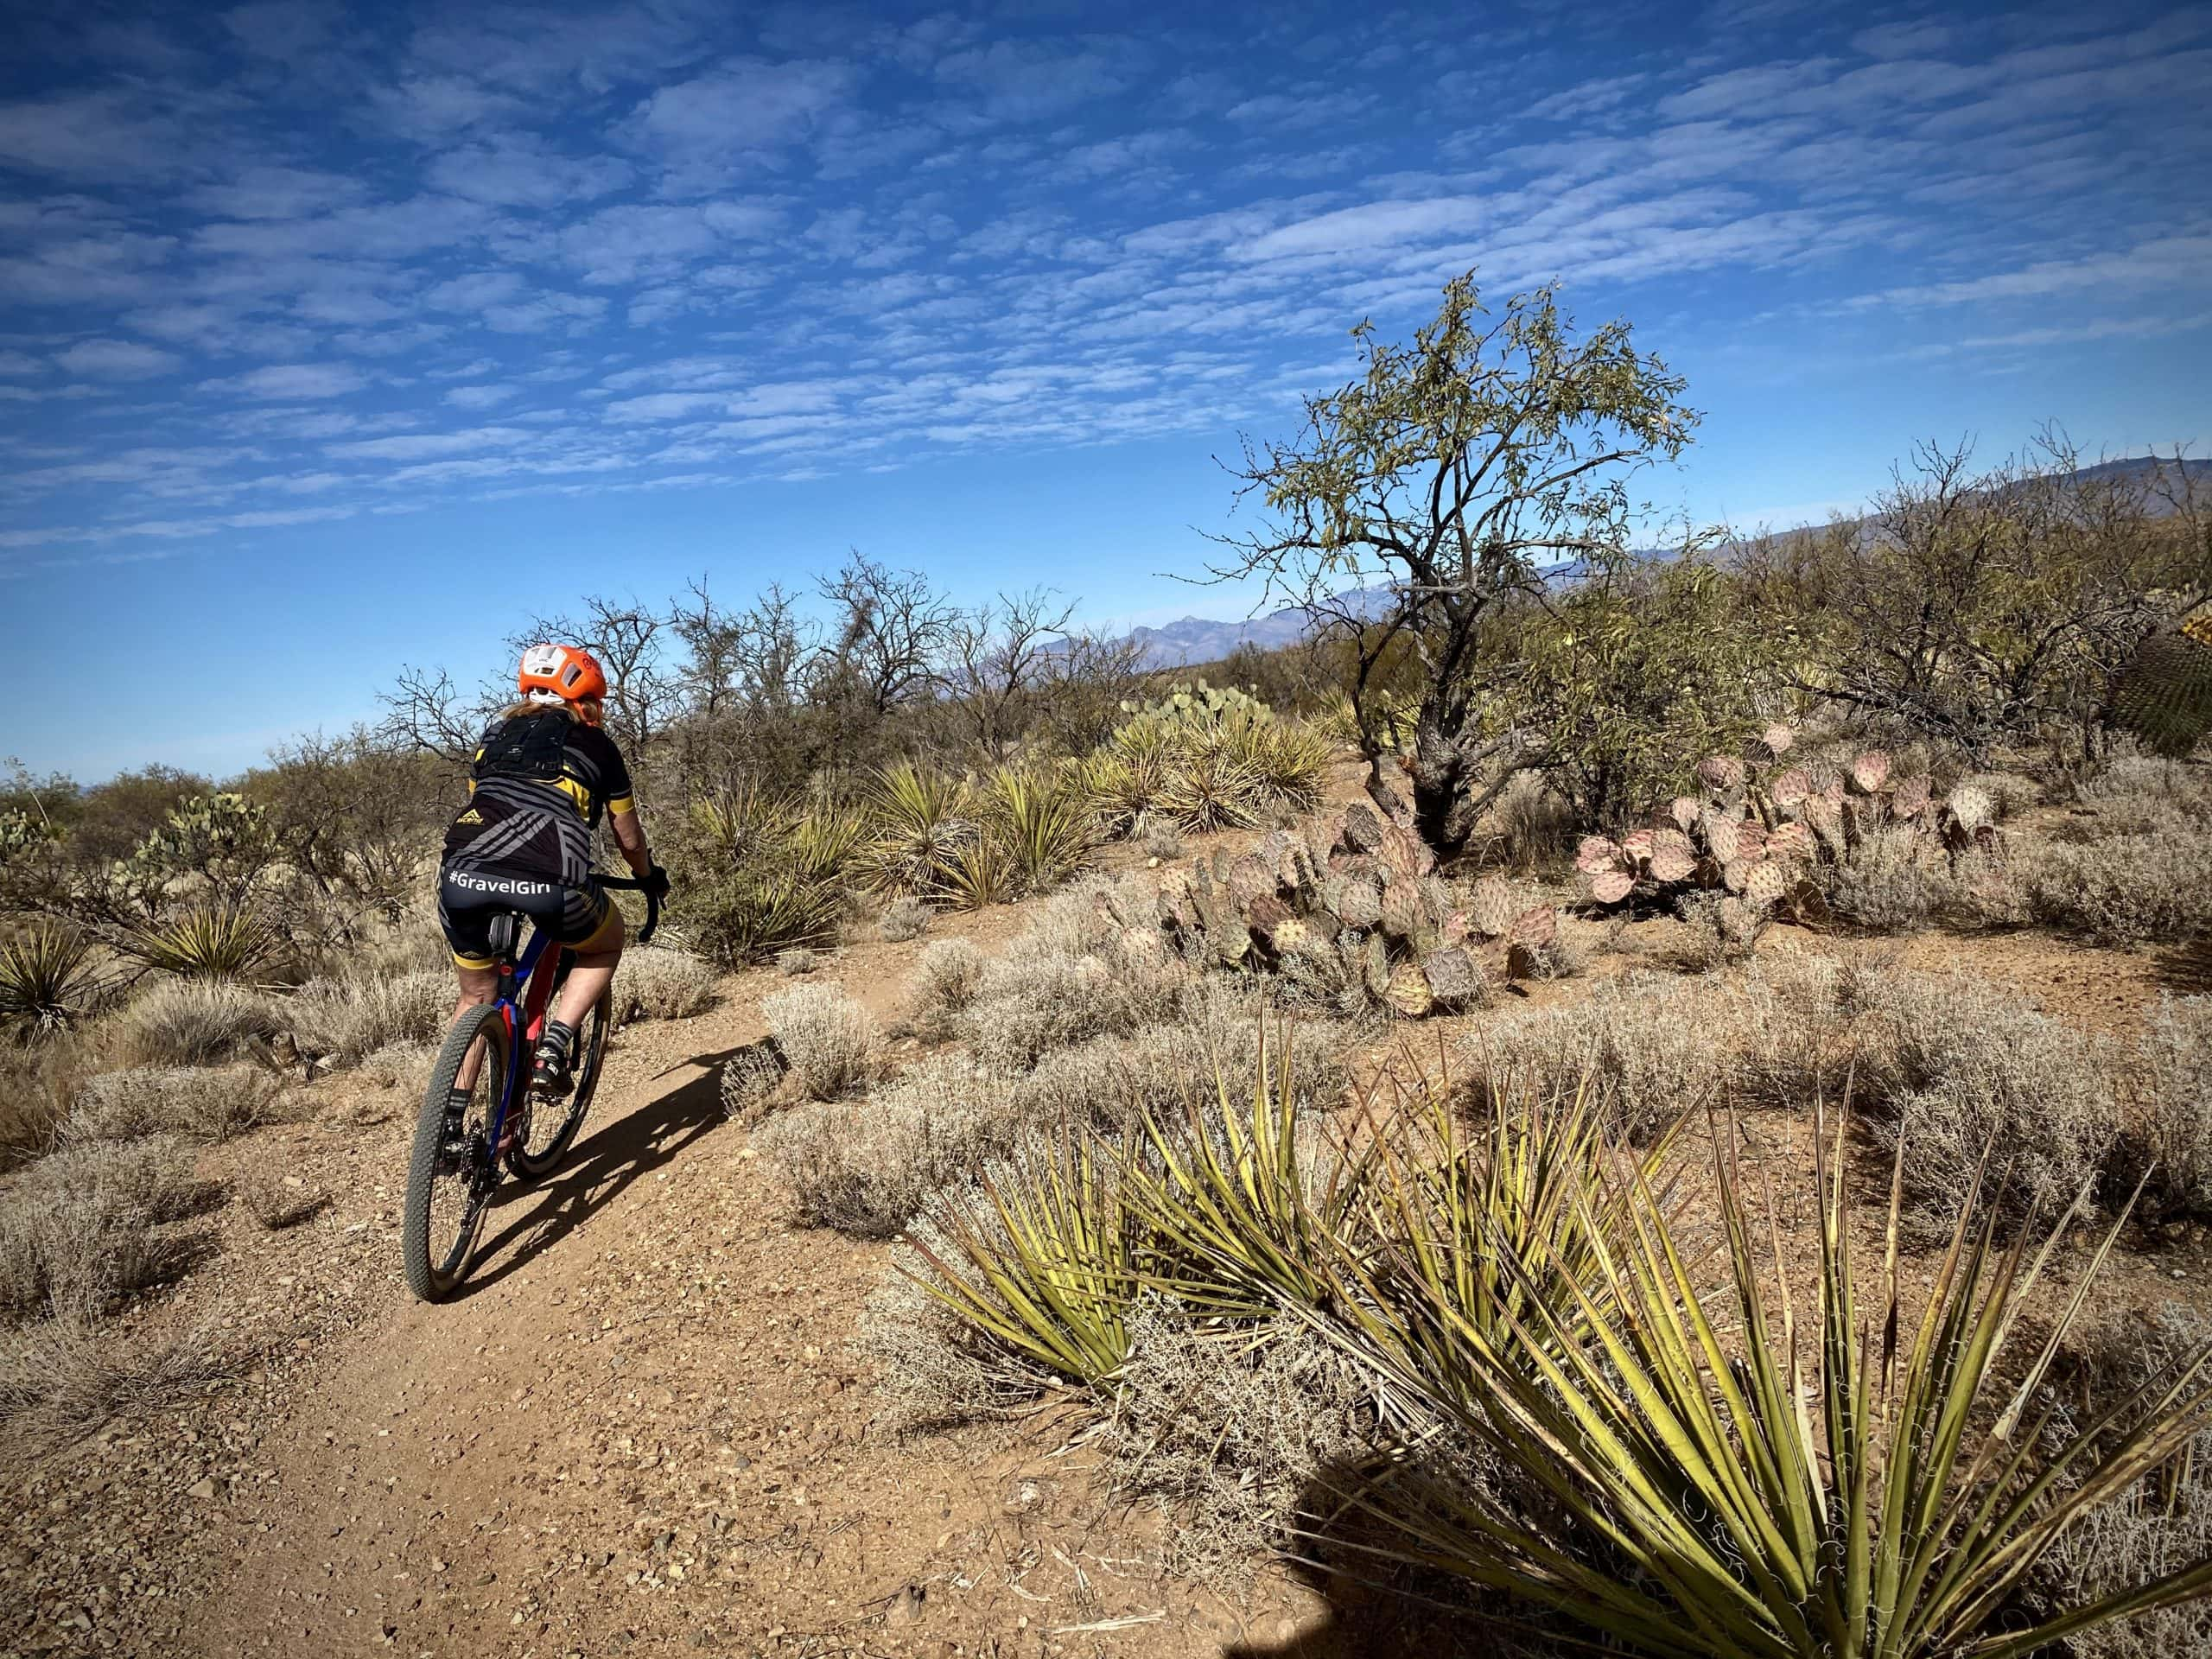 Gravel Girl on the section of the AZT just north of Sahuarita Road.